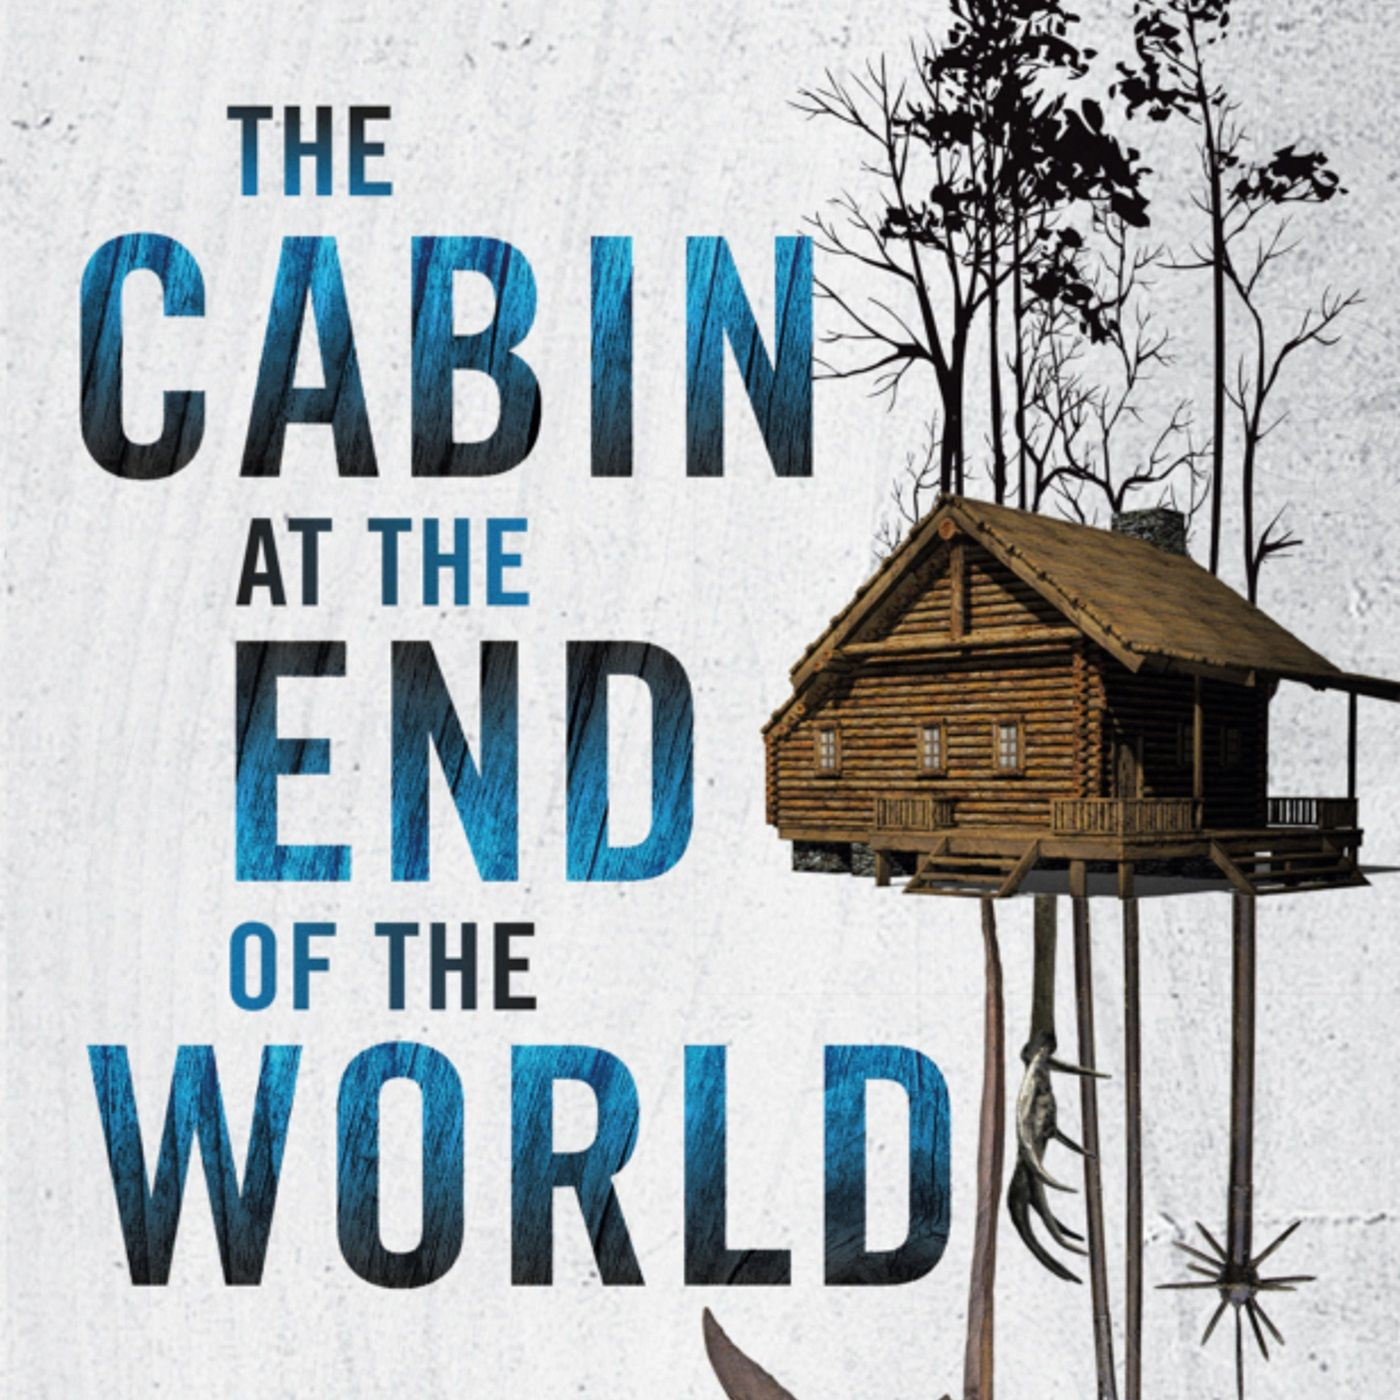 Book-Space! #8. The Cabin at the End of the World by Paul Tremblay